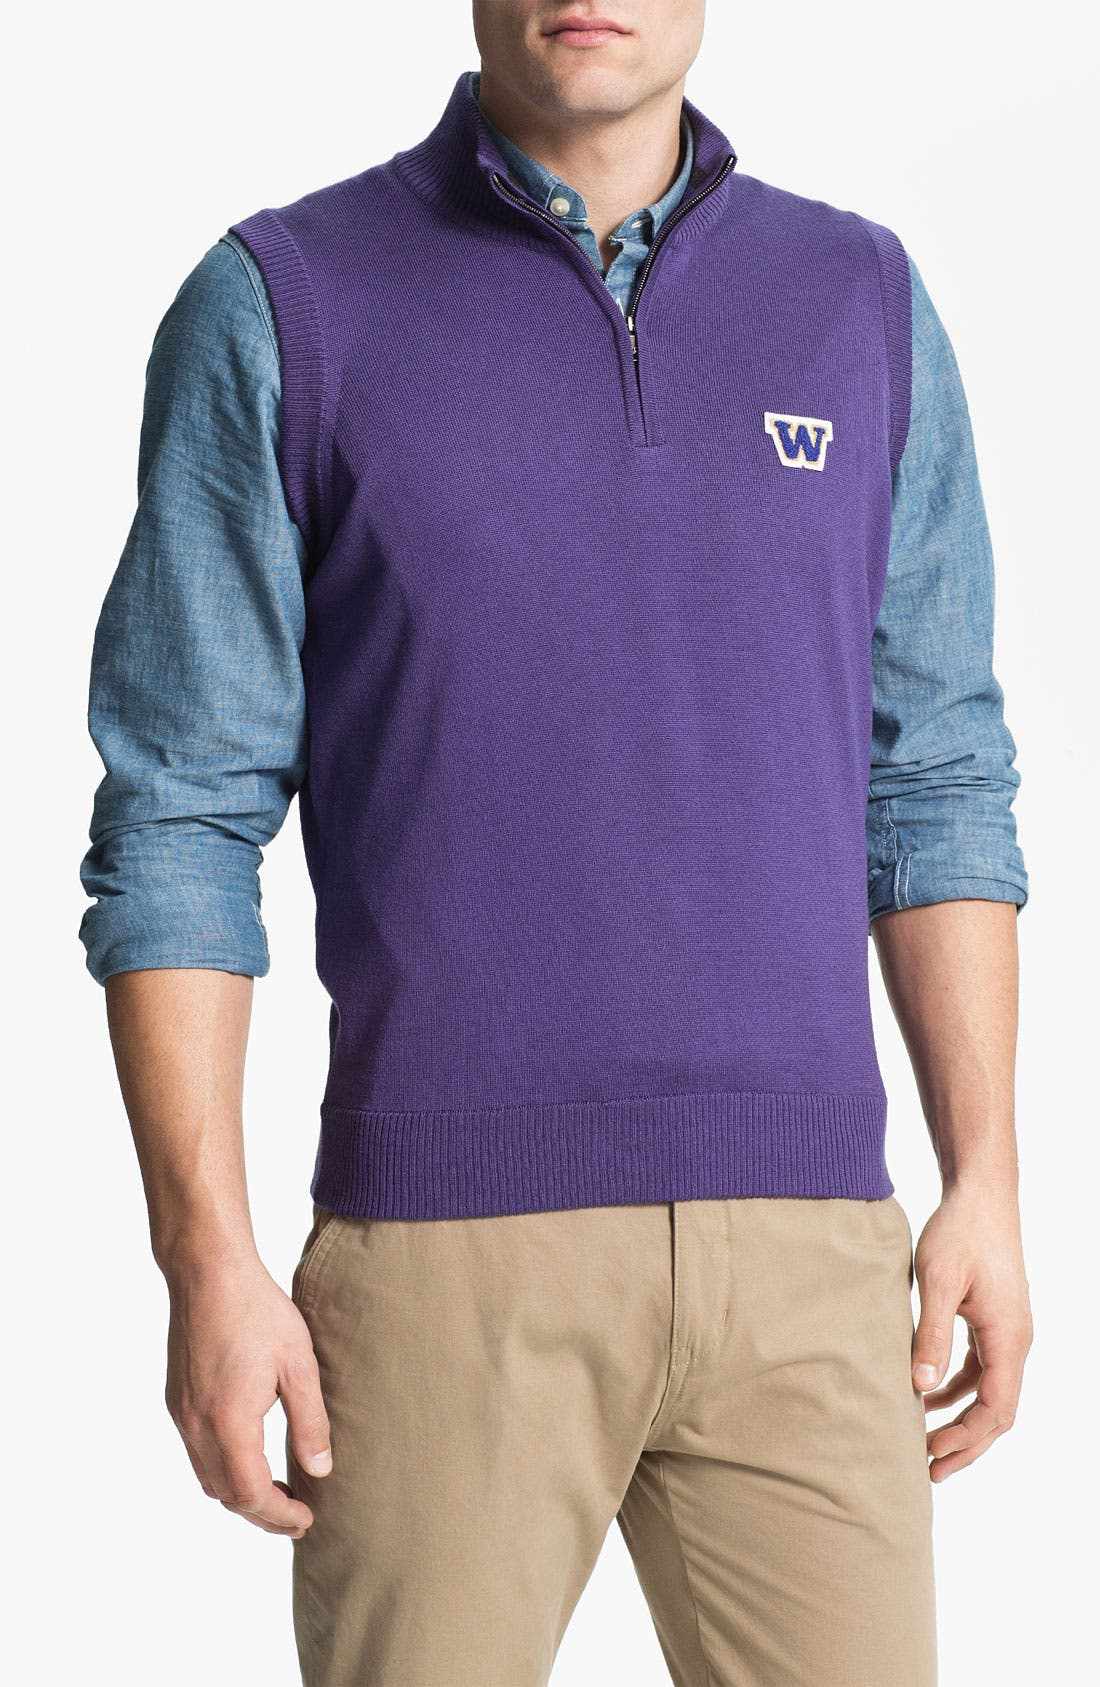 Alternate Image 1 Selected - WASHINGTON 1/4 ZIP SWEATER VEST